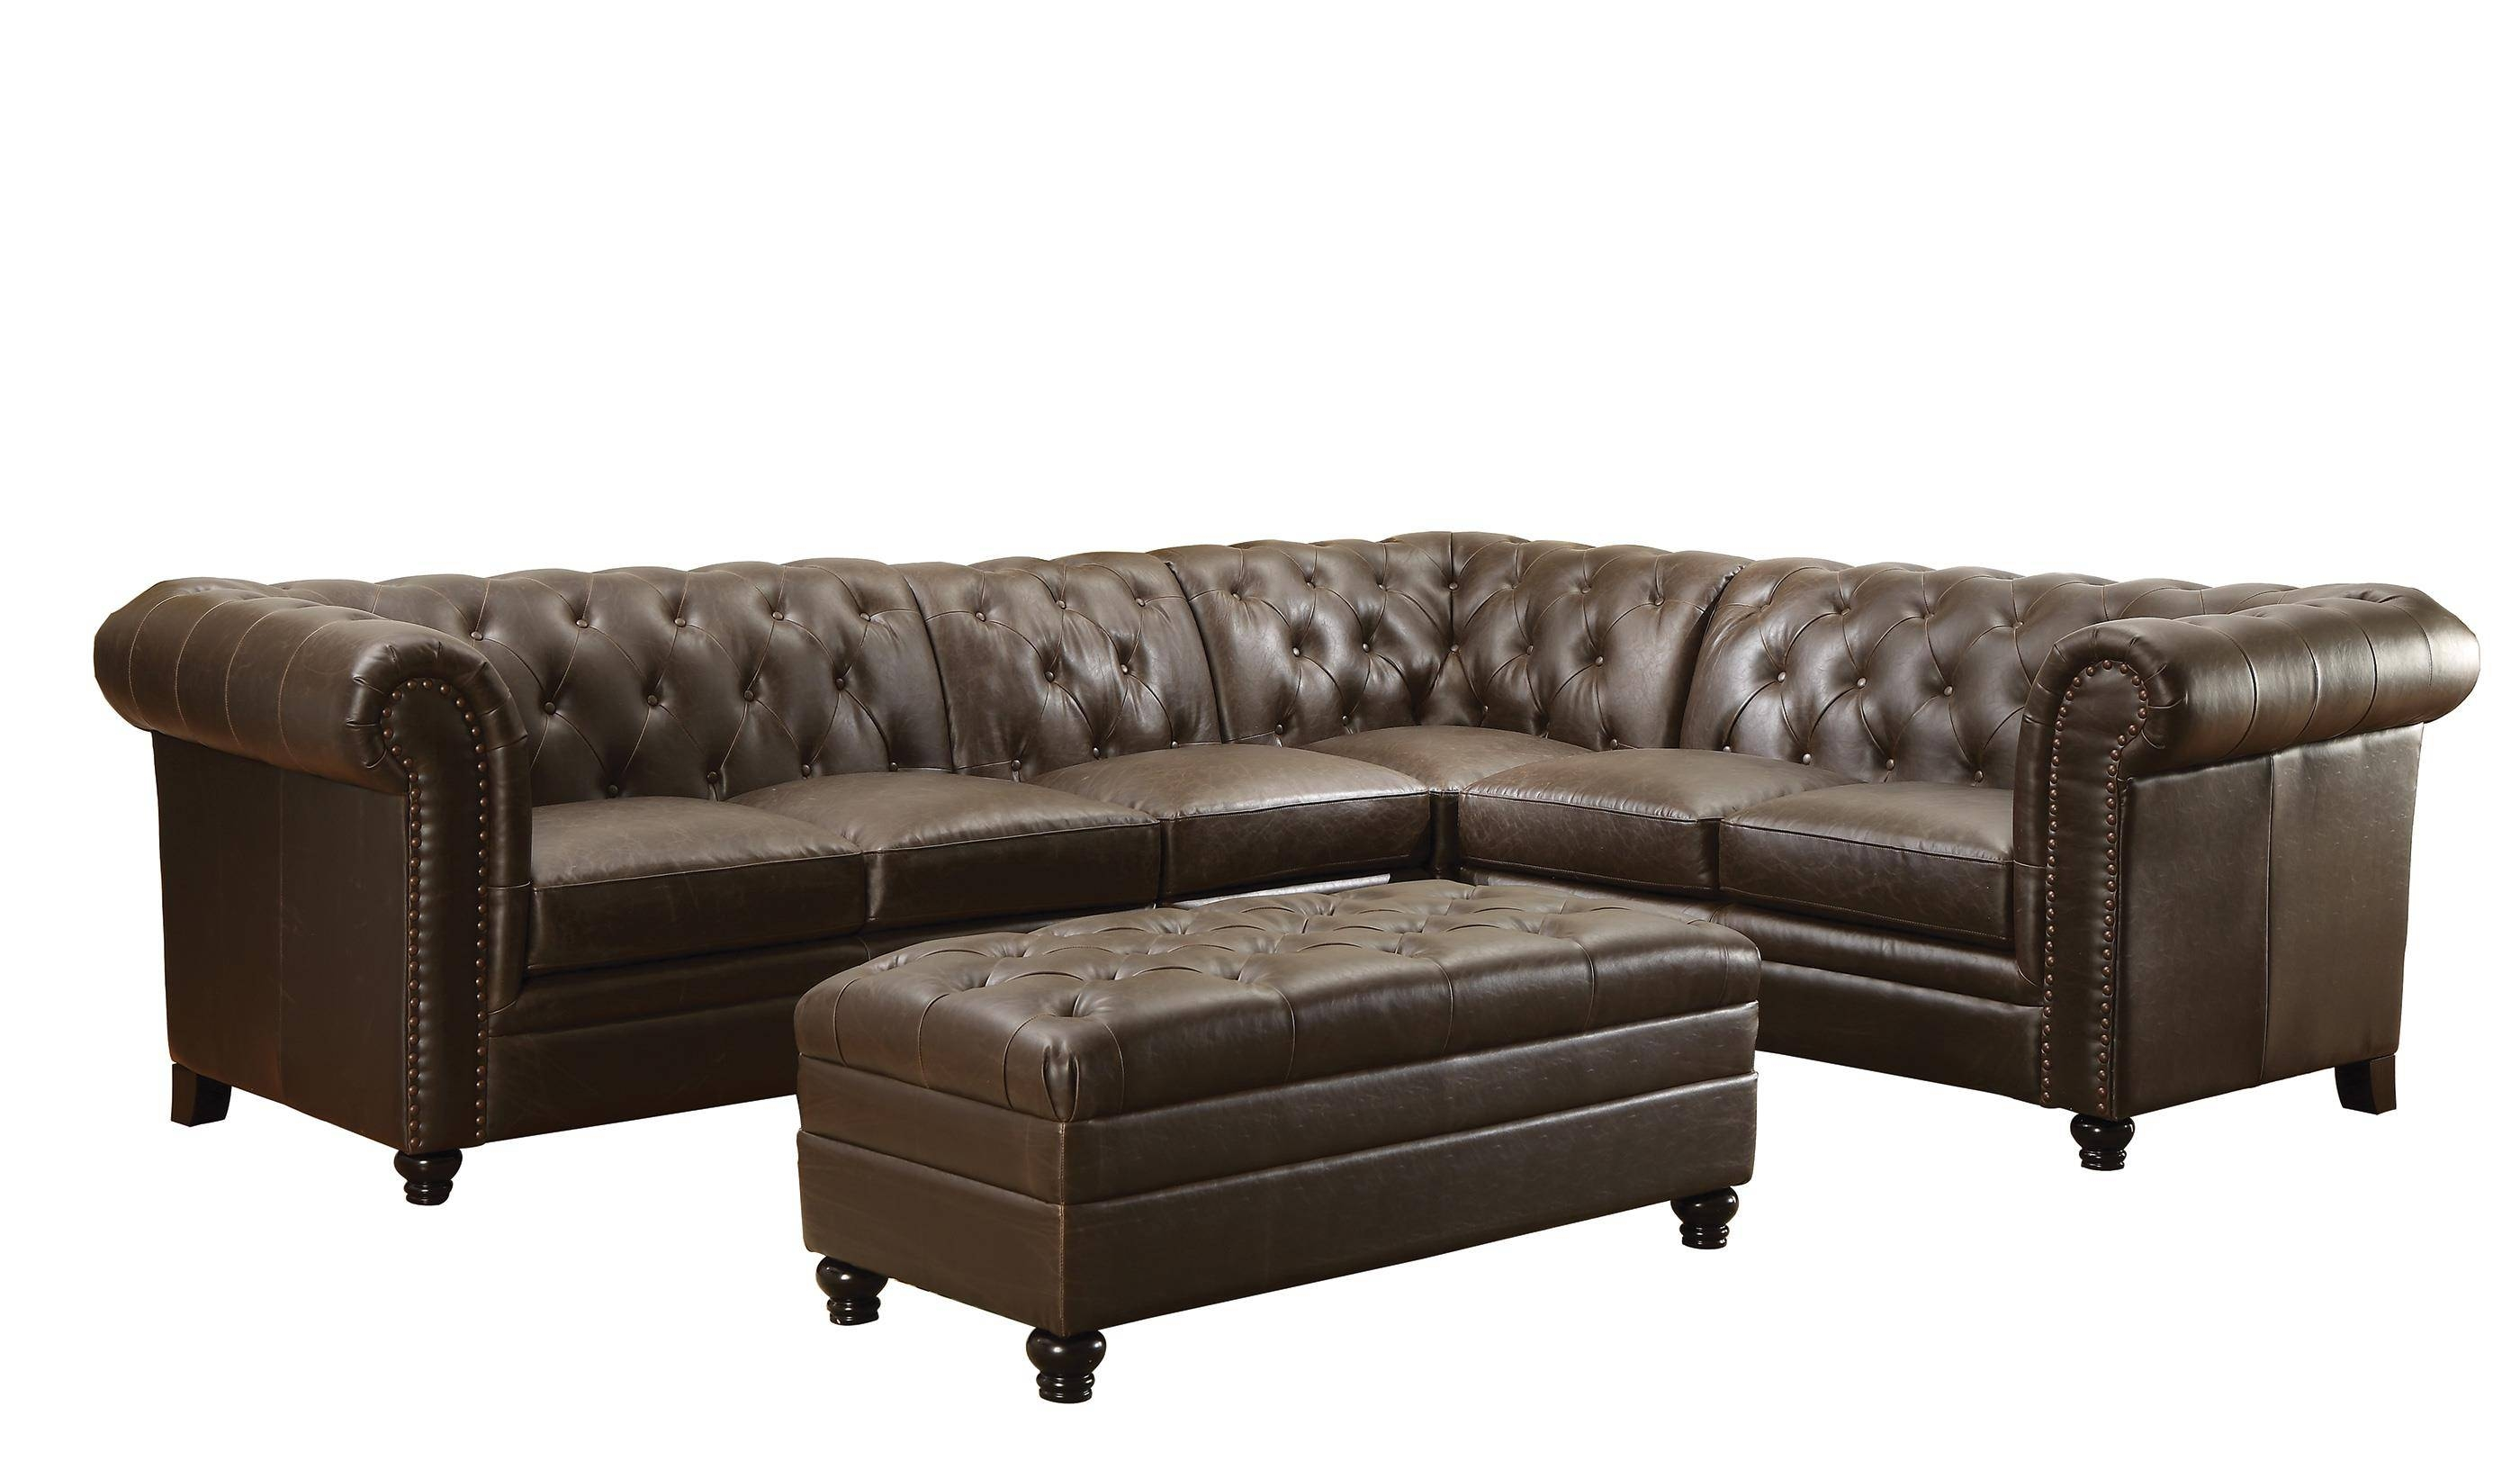 Coaster Roy Button-Tufted Sectional Sofa With Armless Chair - Del regarding Armless Sectional Sofa (Image 6 of 30)